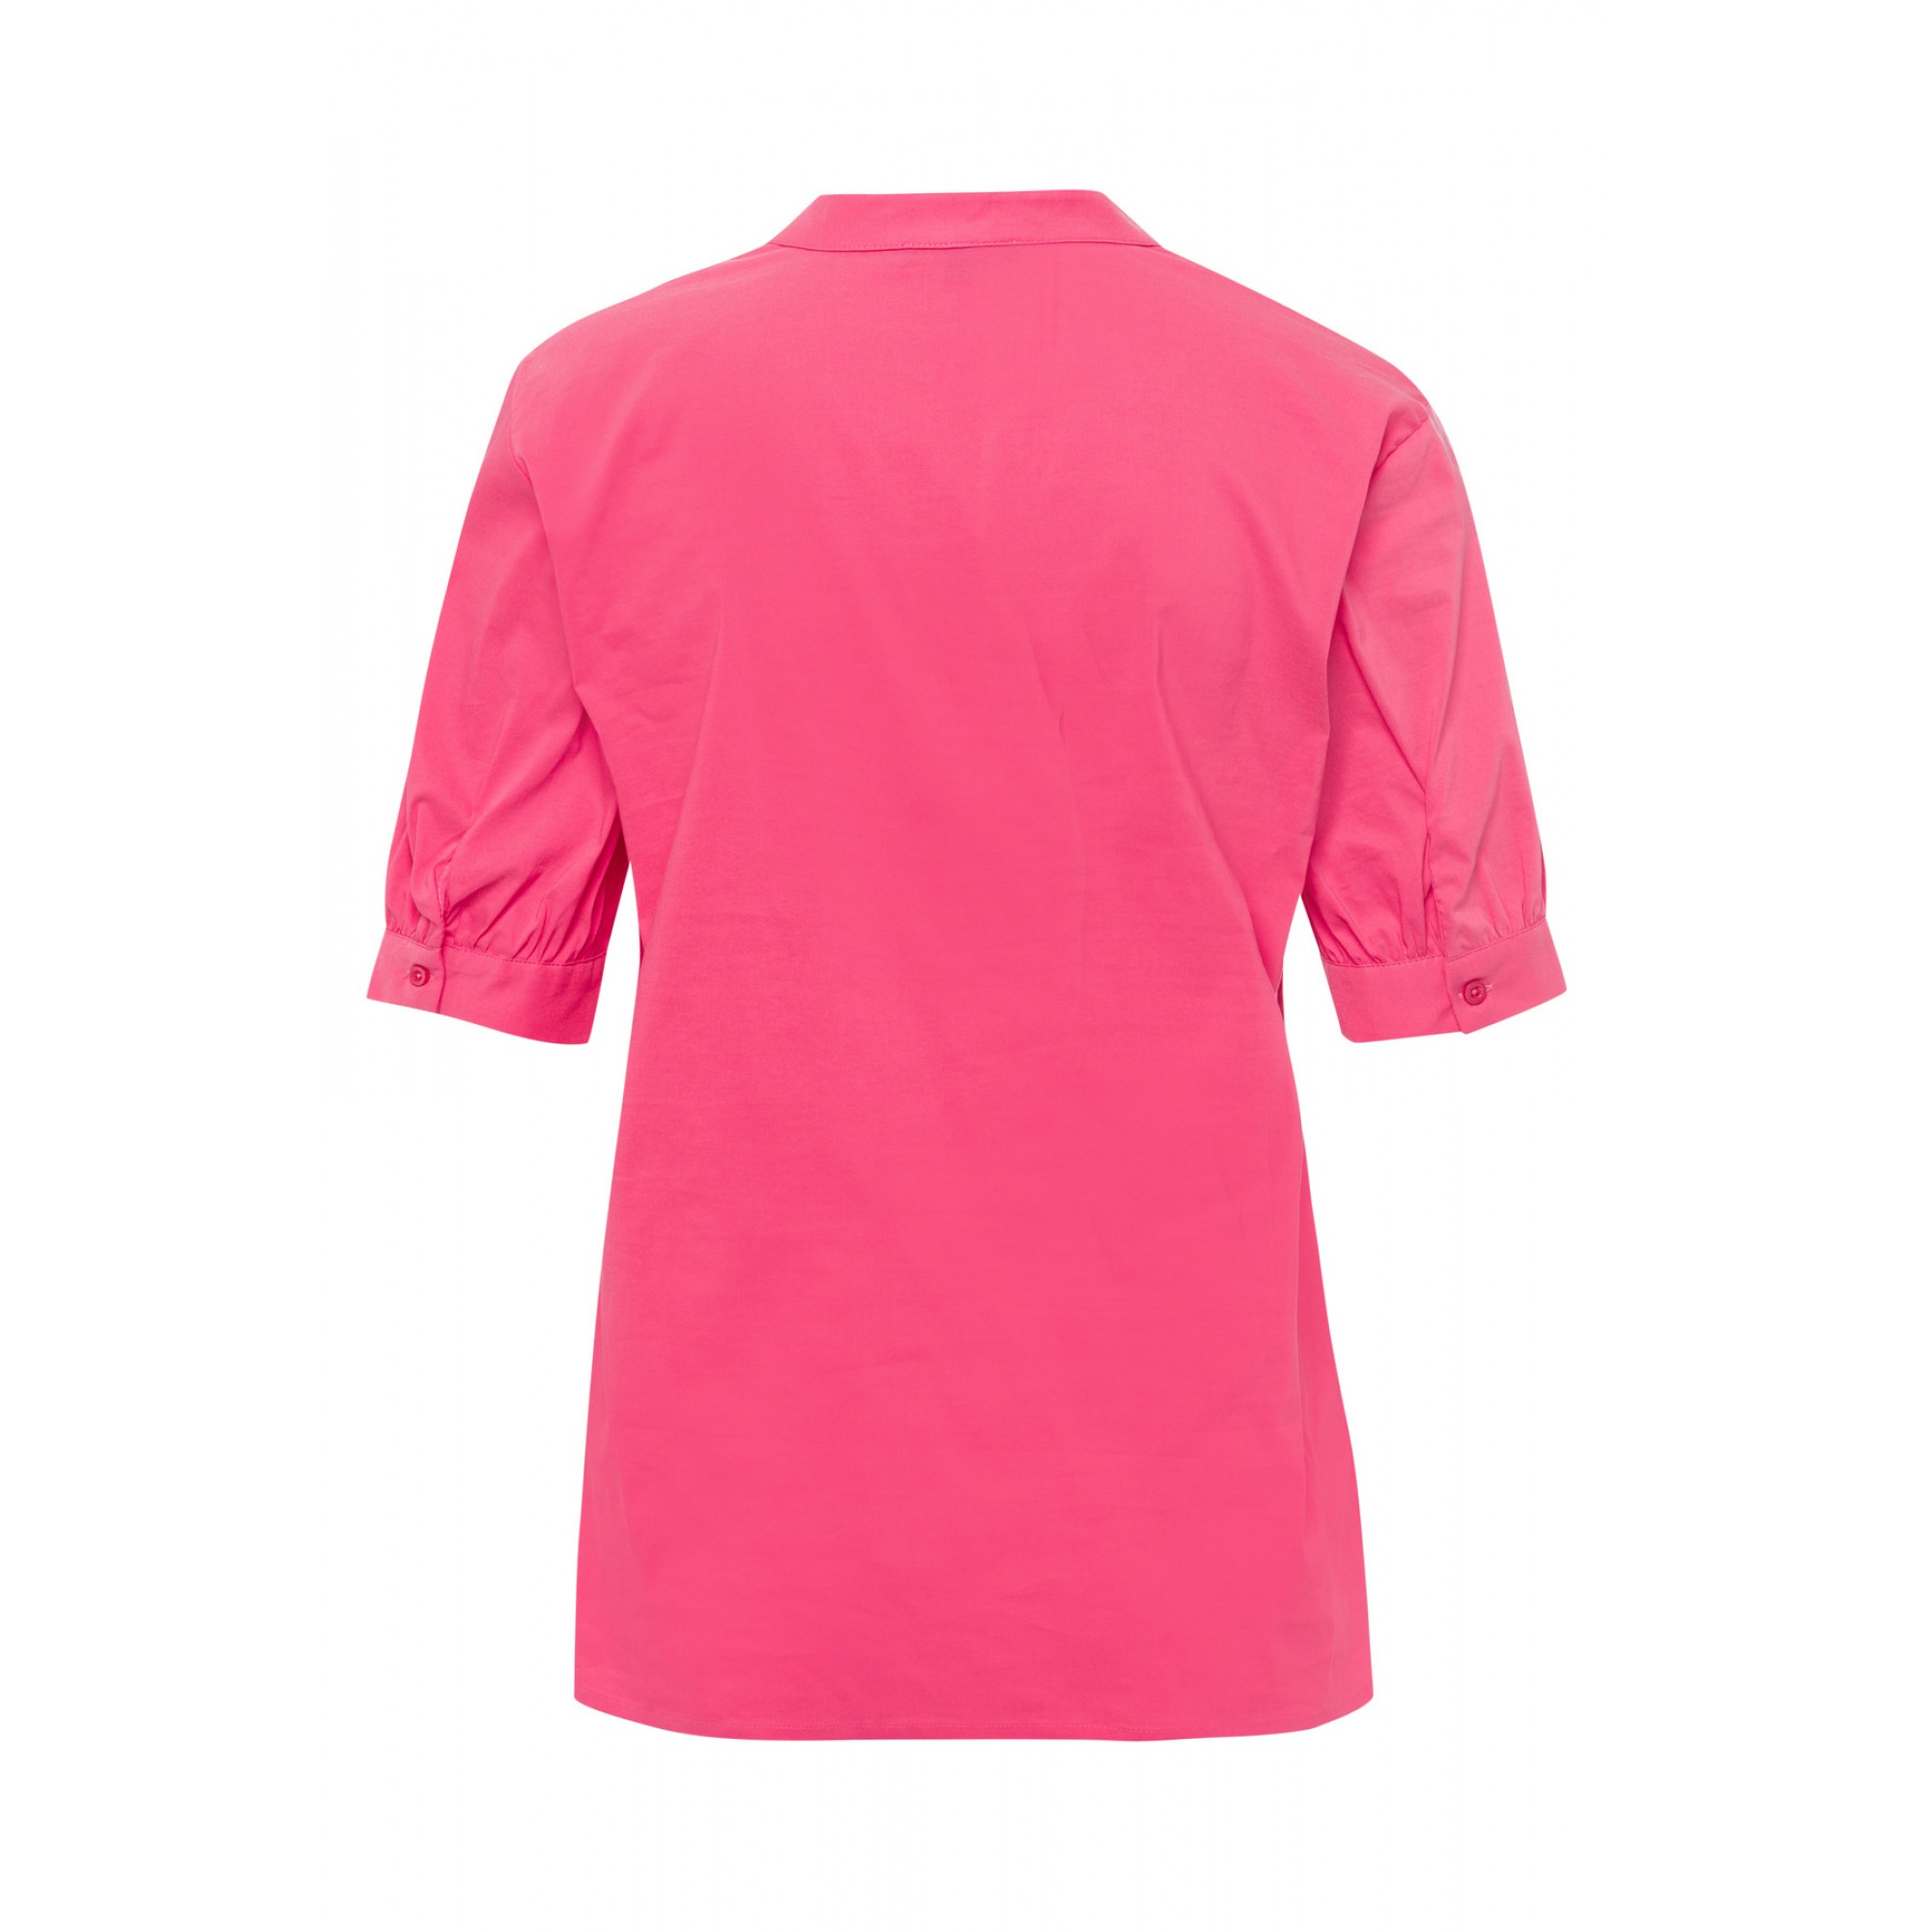 Baumwoll/Stretch Bluse, pink berry 11832551-0831 2